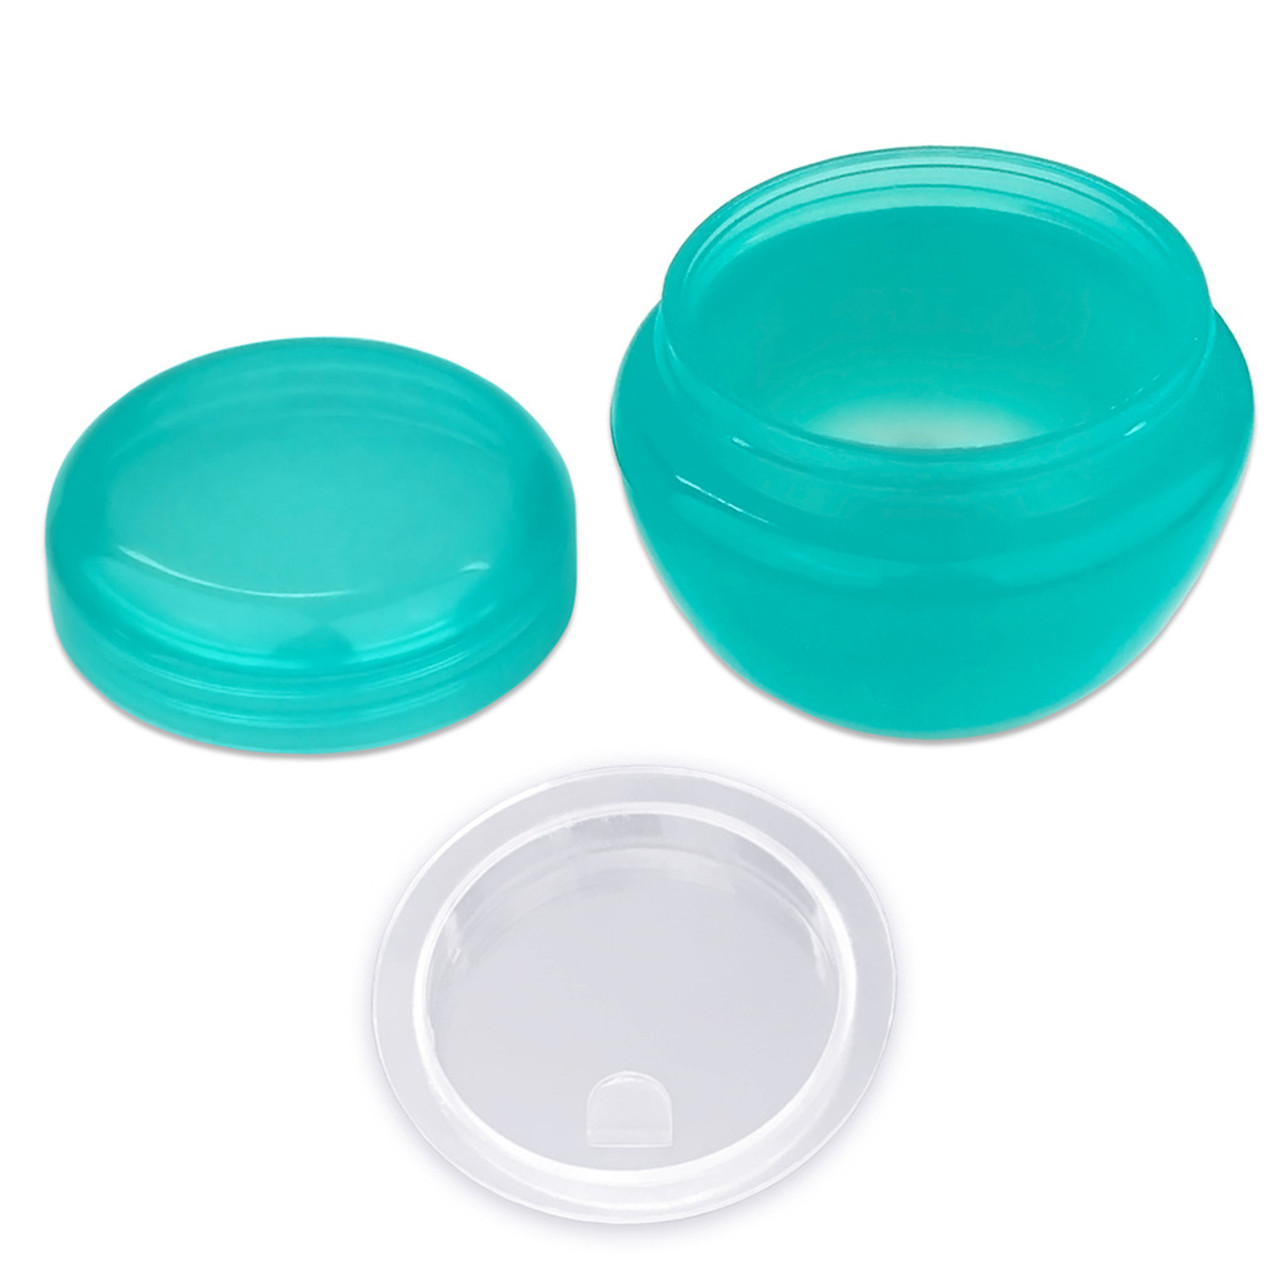 10G/10ML Plastic Cosmetic Sample Jars (Frosted)